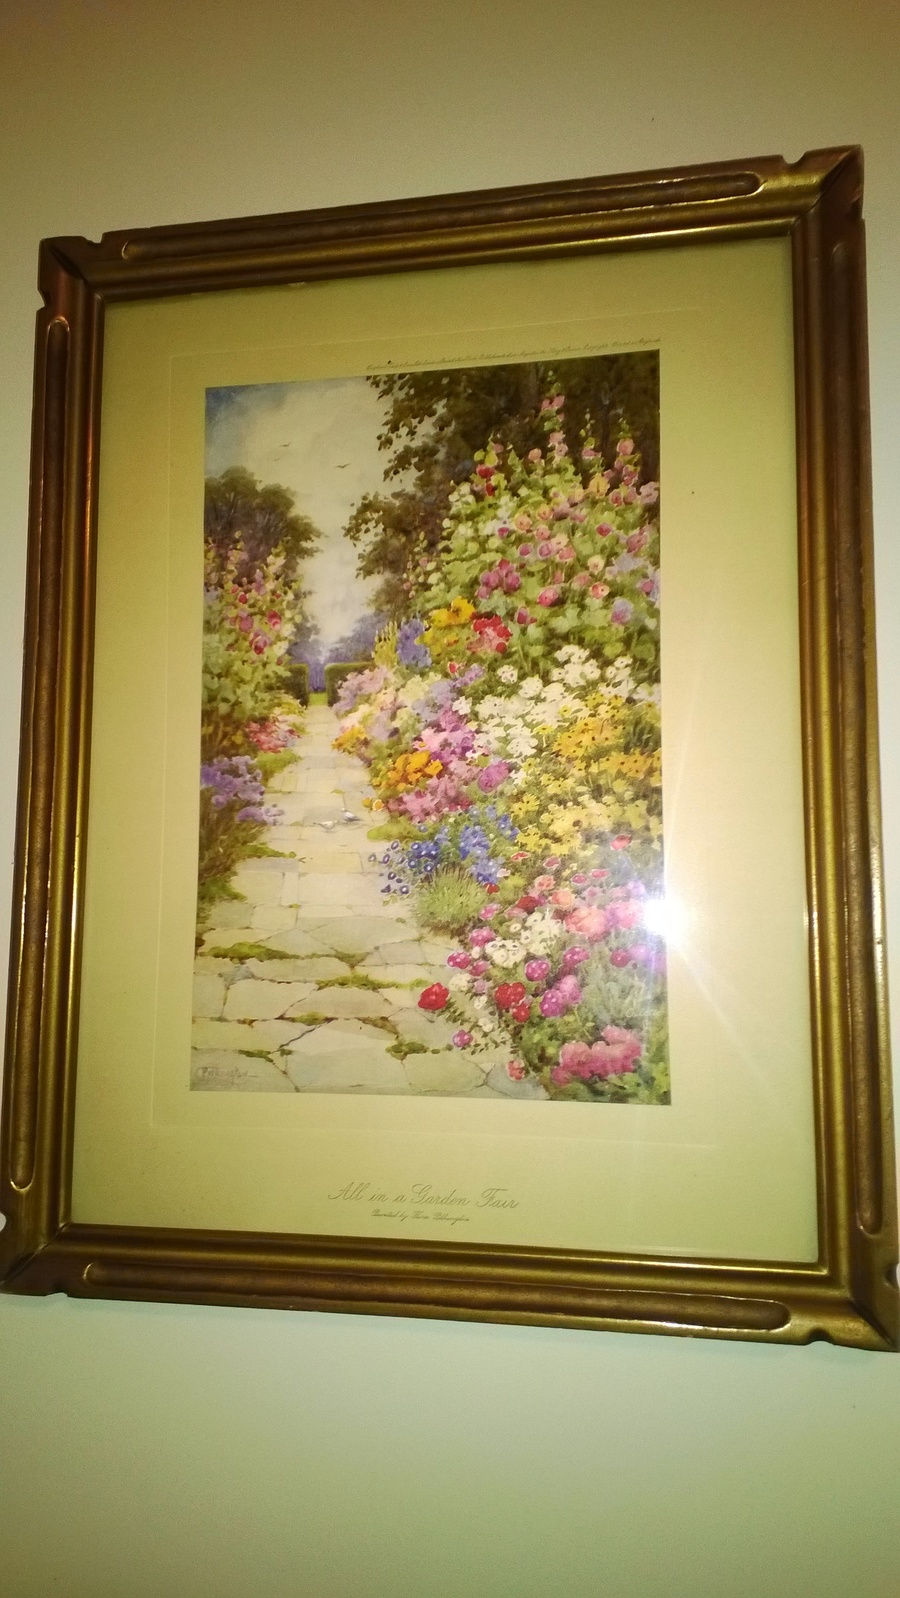 I Have Two Flora Pilkington Watercolor Prints, Beautifully Framed ...